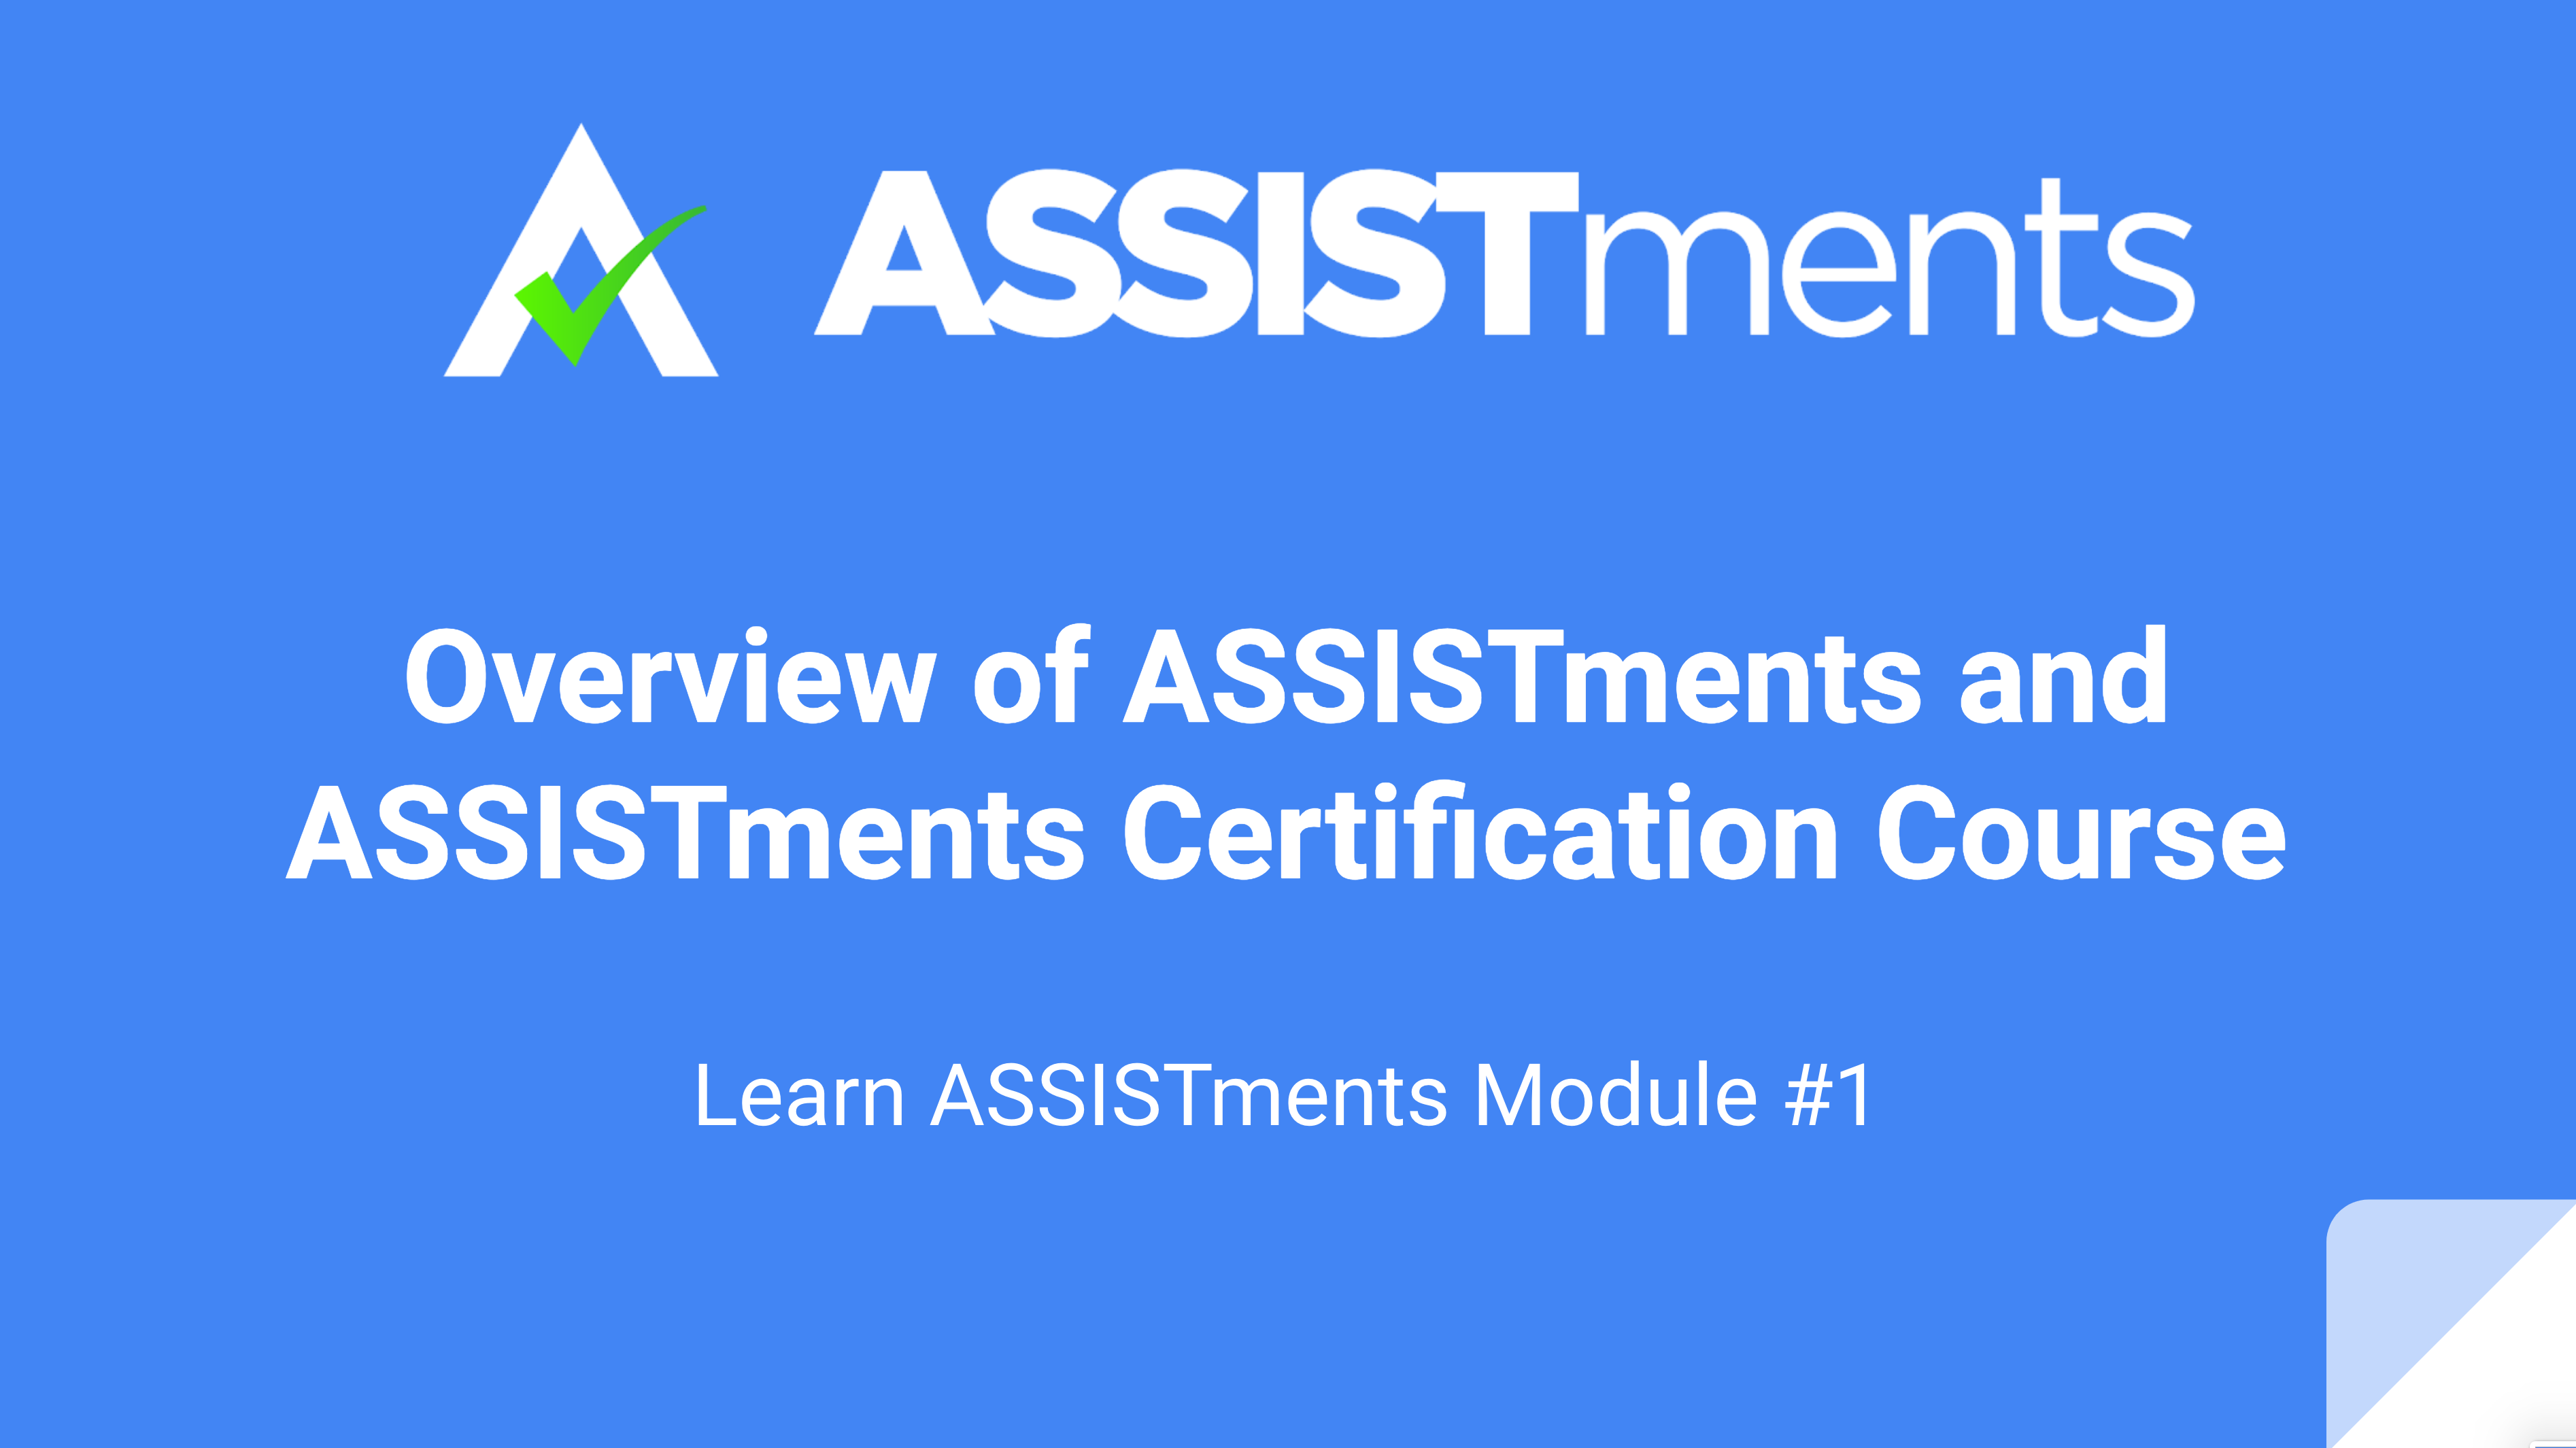 Learn ASSISTments Module #1